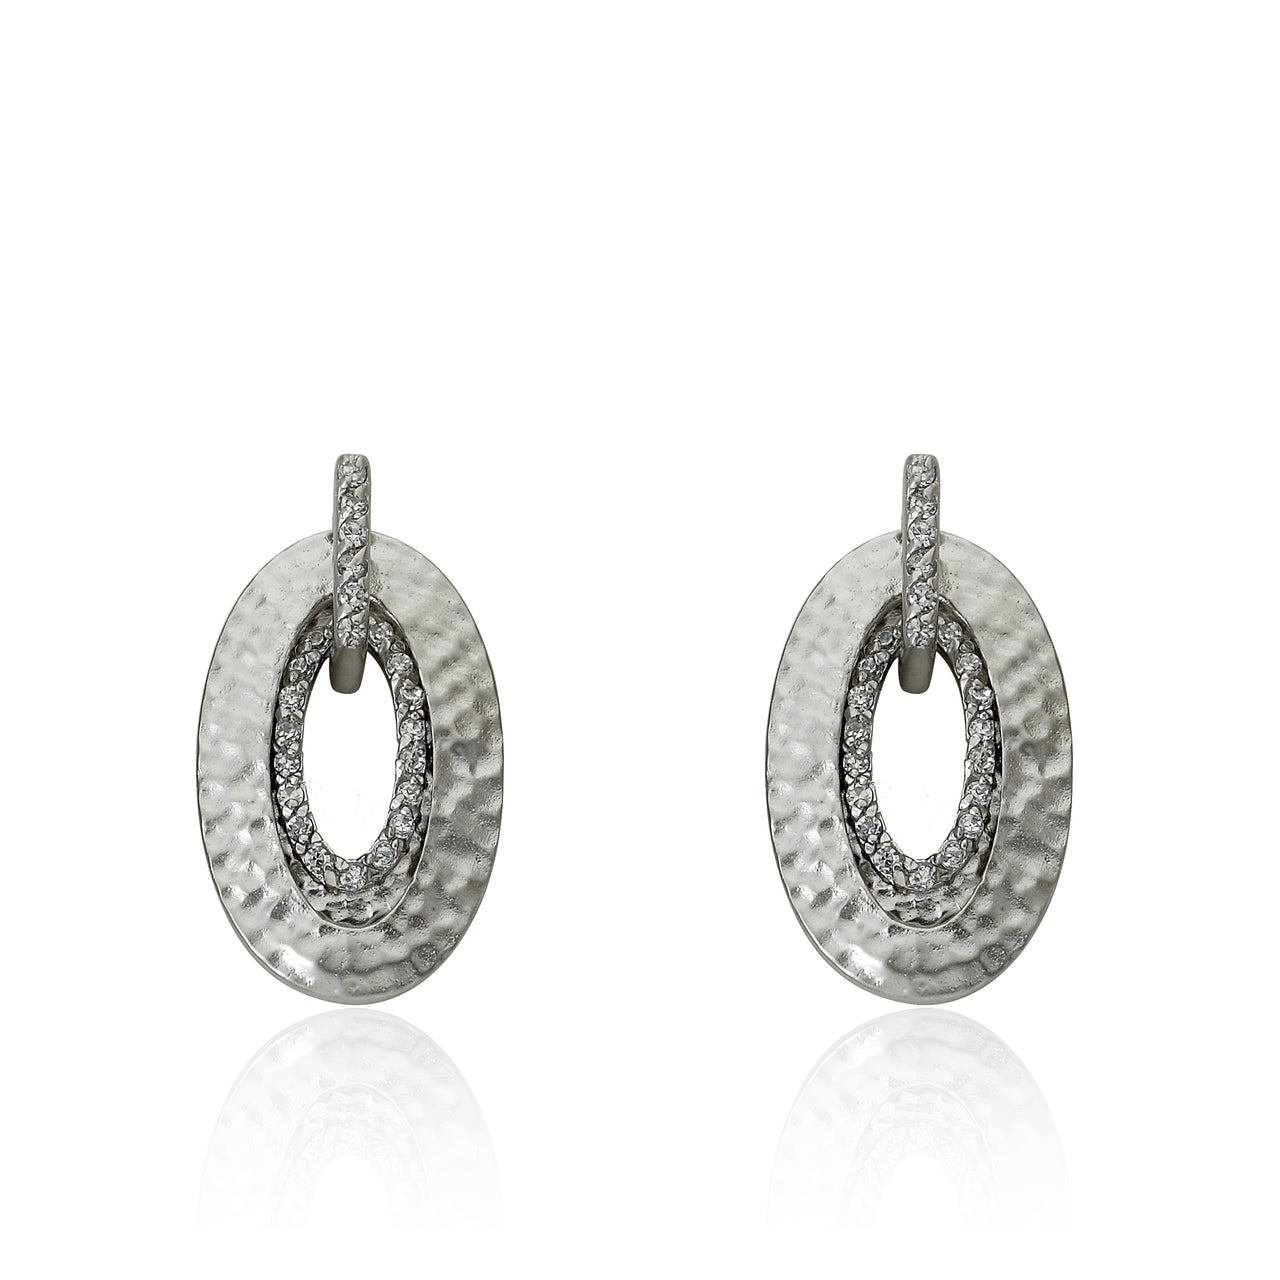 Retro Hammered Teardrop In Teardrop Earring